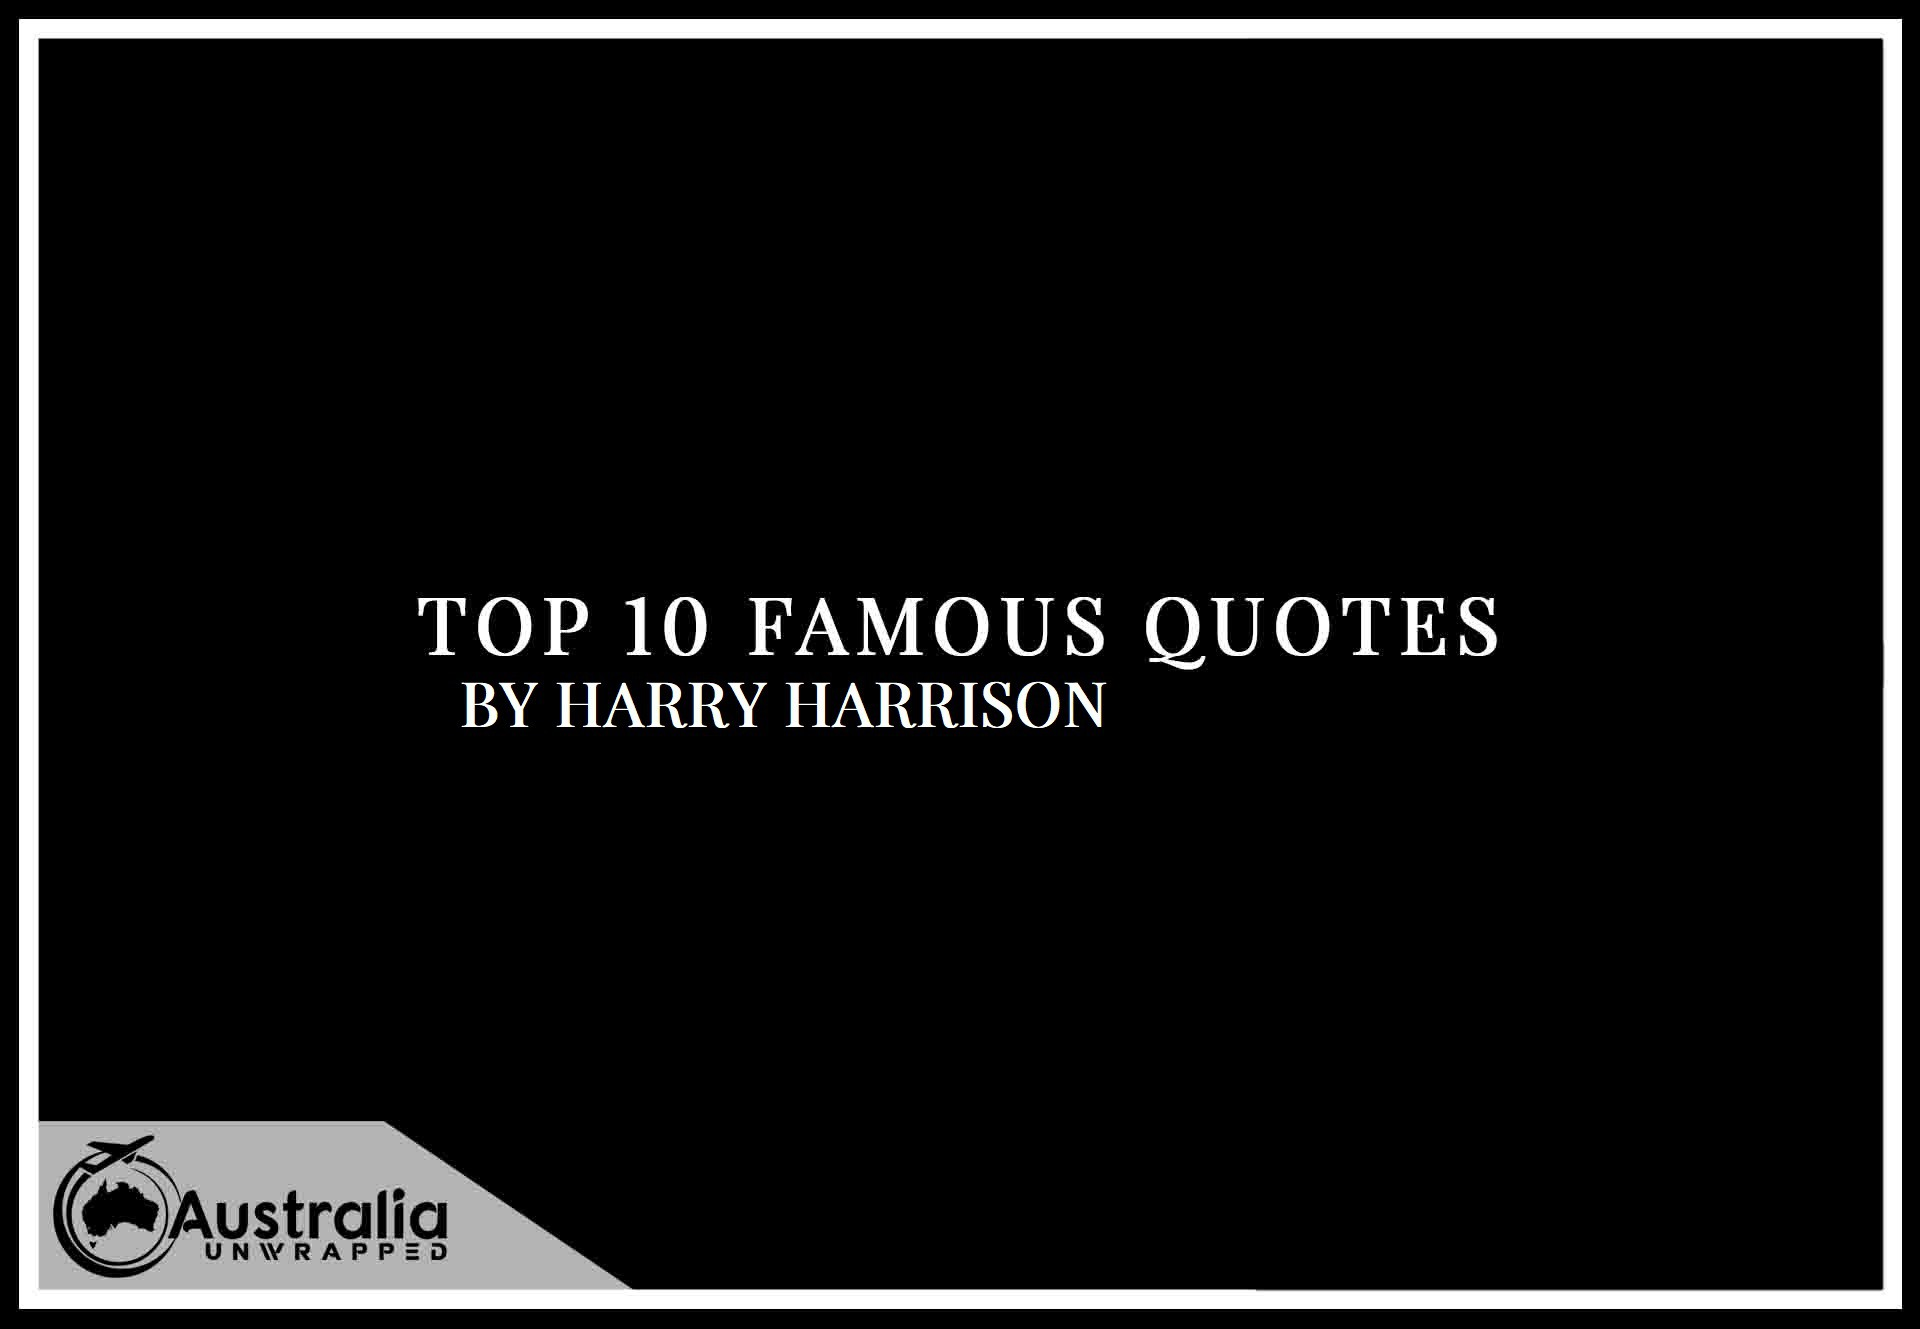 Top 10 Famous Quotes by Author Harry Harrison